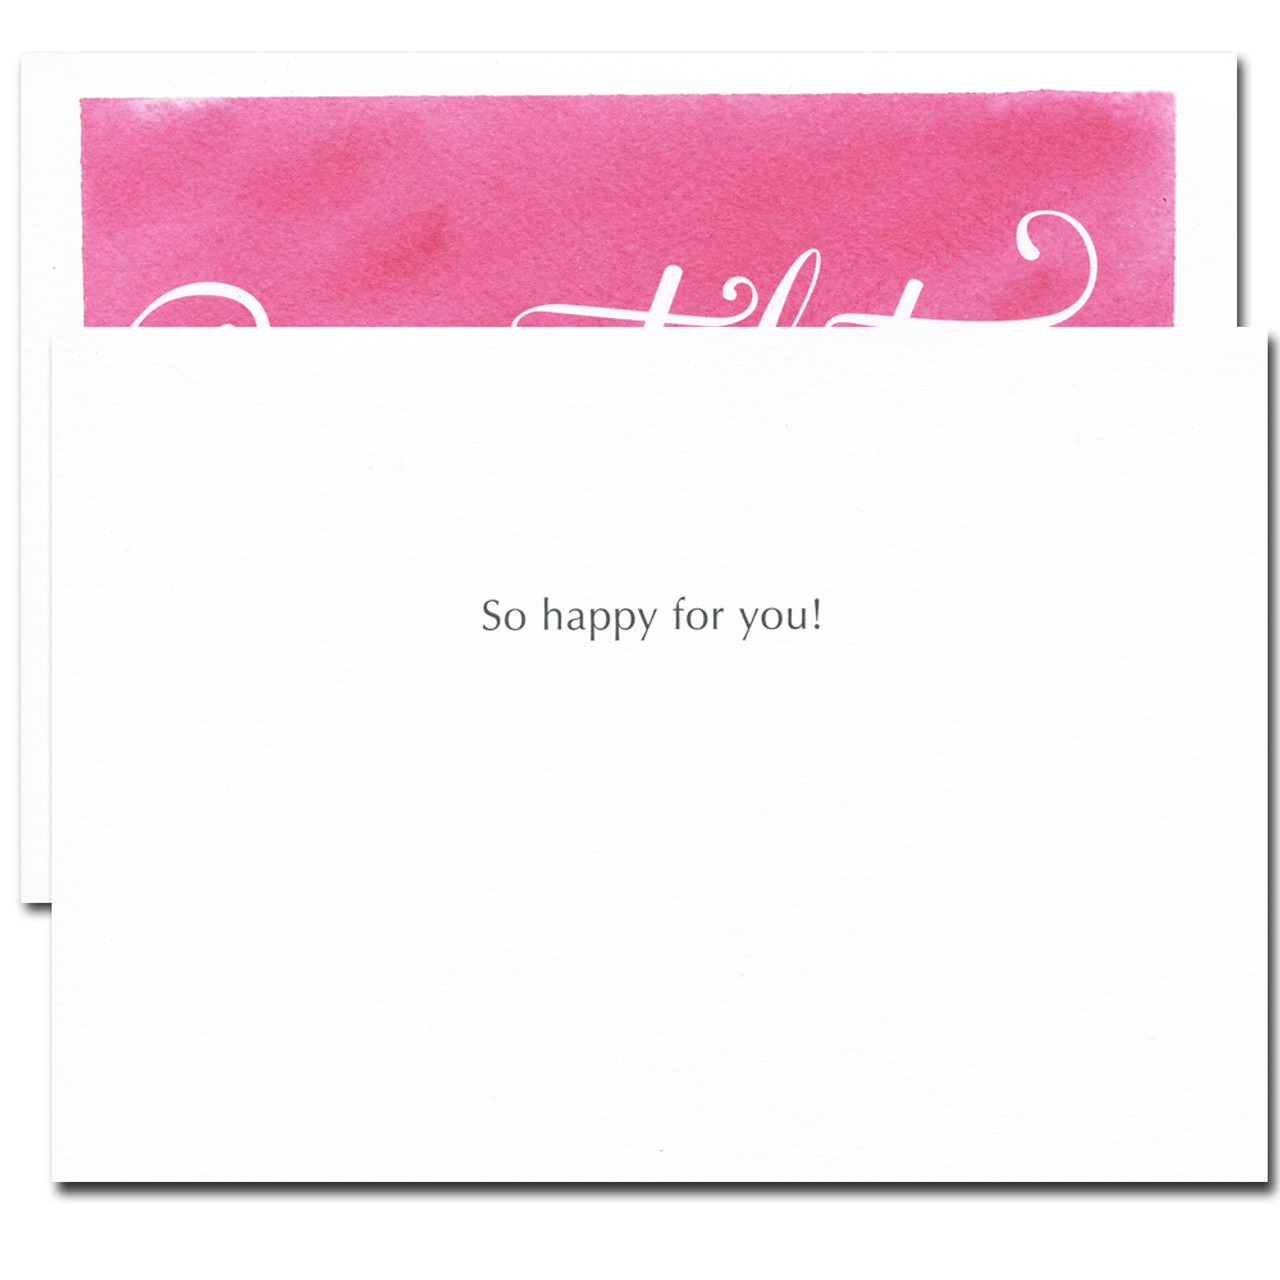 Congratulations Card - Flourishes. Inside reads: So happy for you!